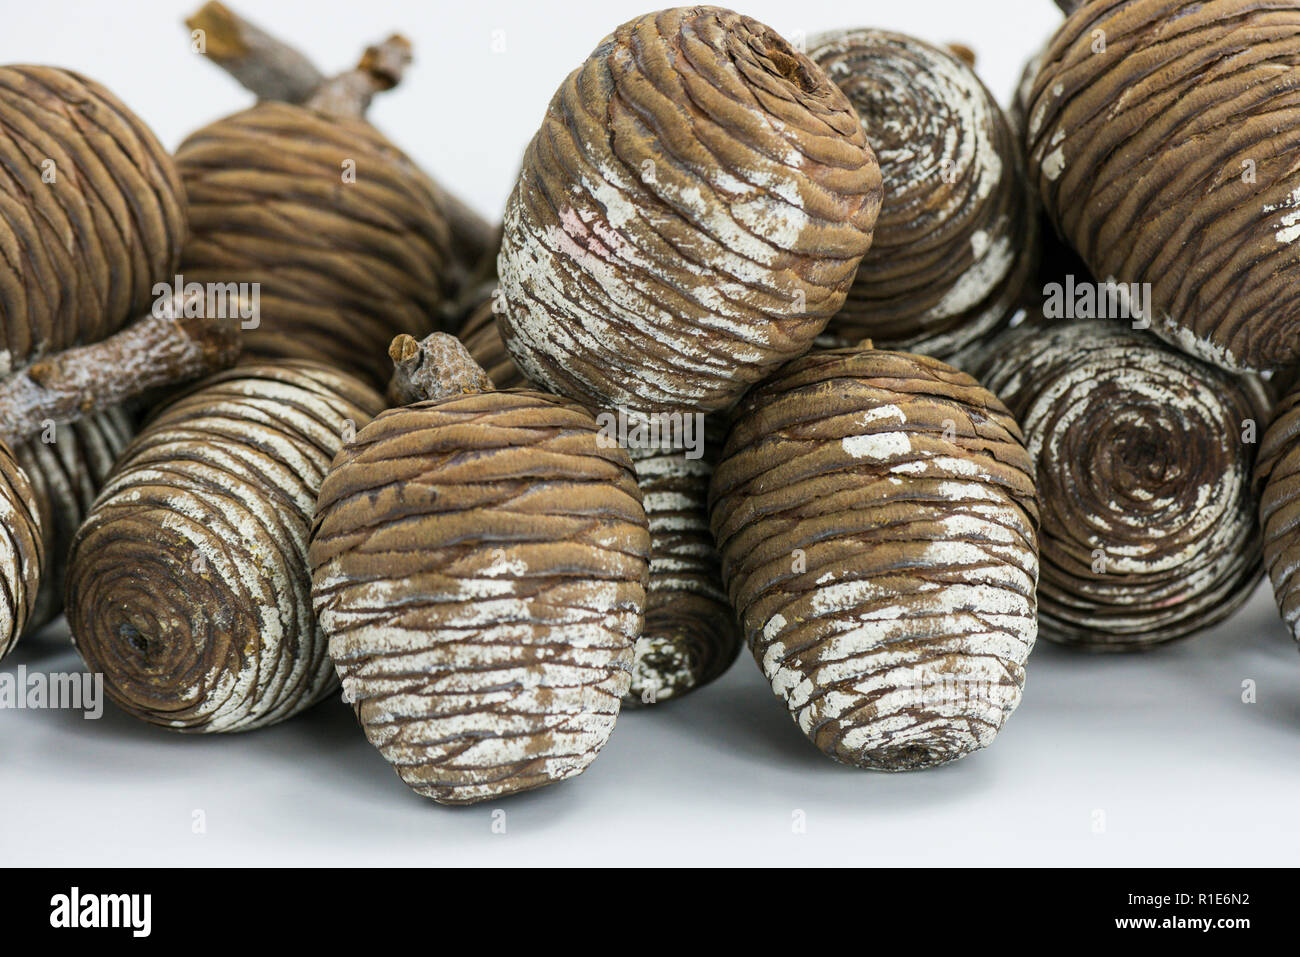 Painted pine cone Christmas decorations - Stock Image